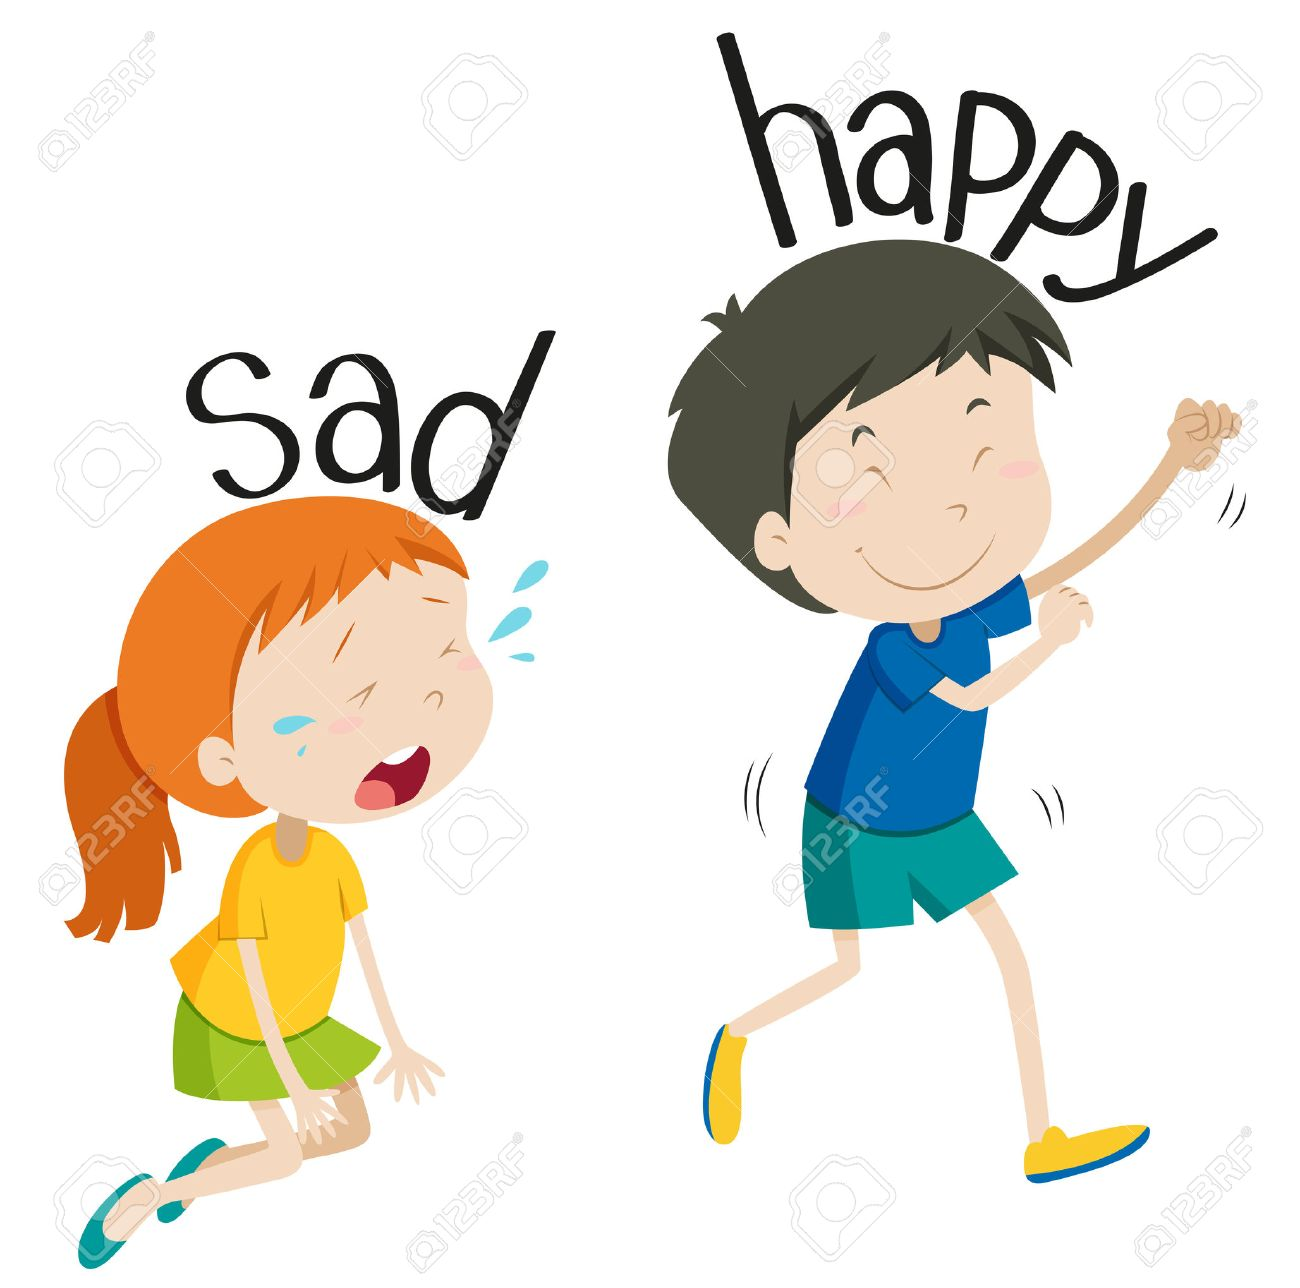 Opposite adjective sad and happy illustration.